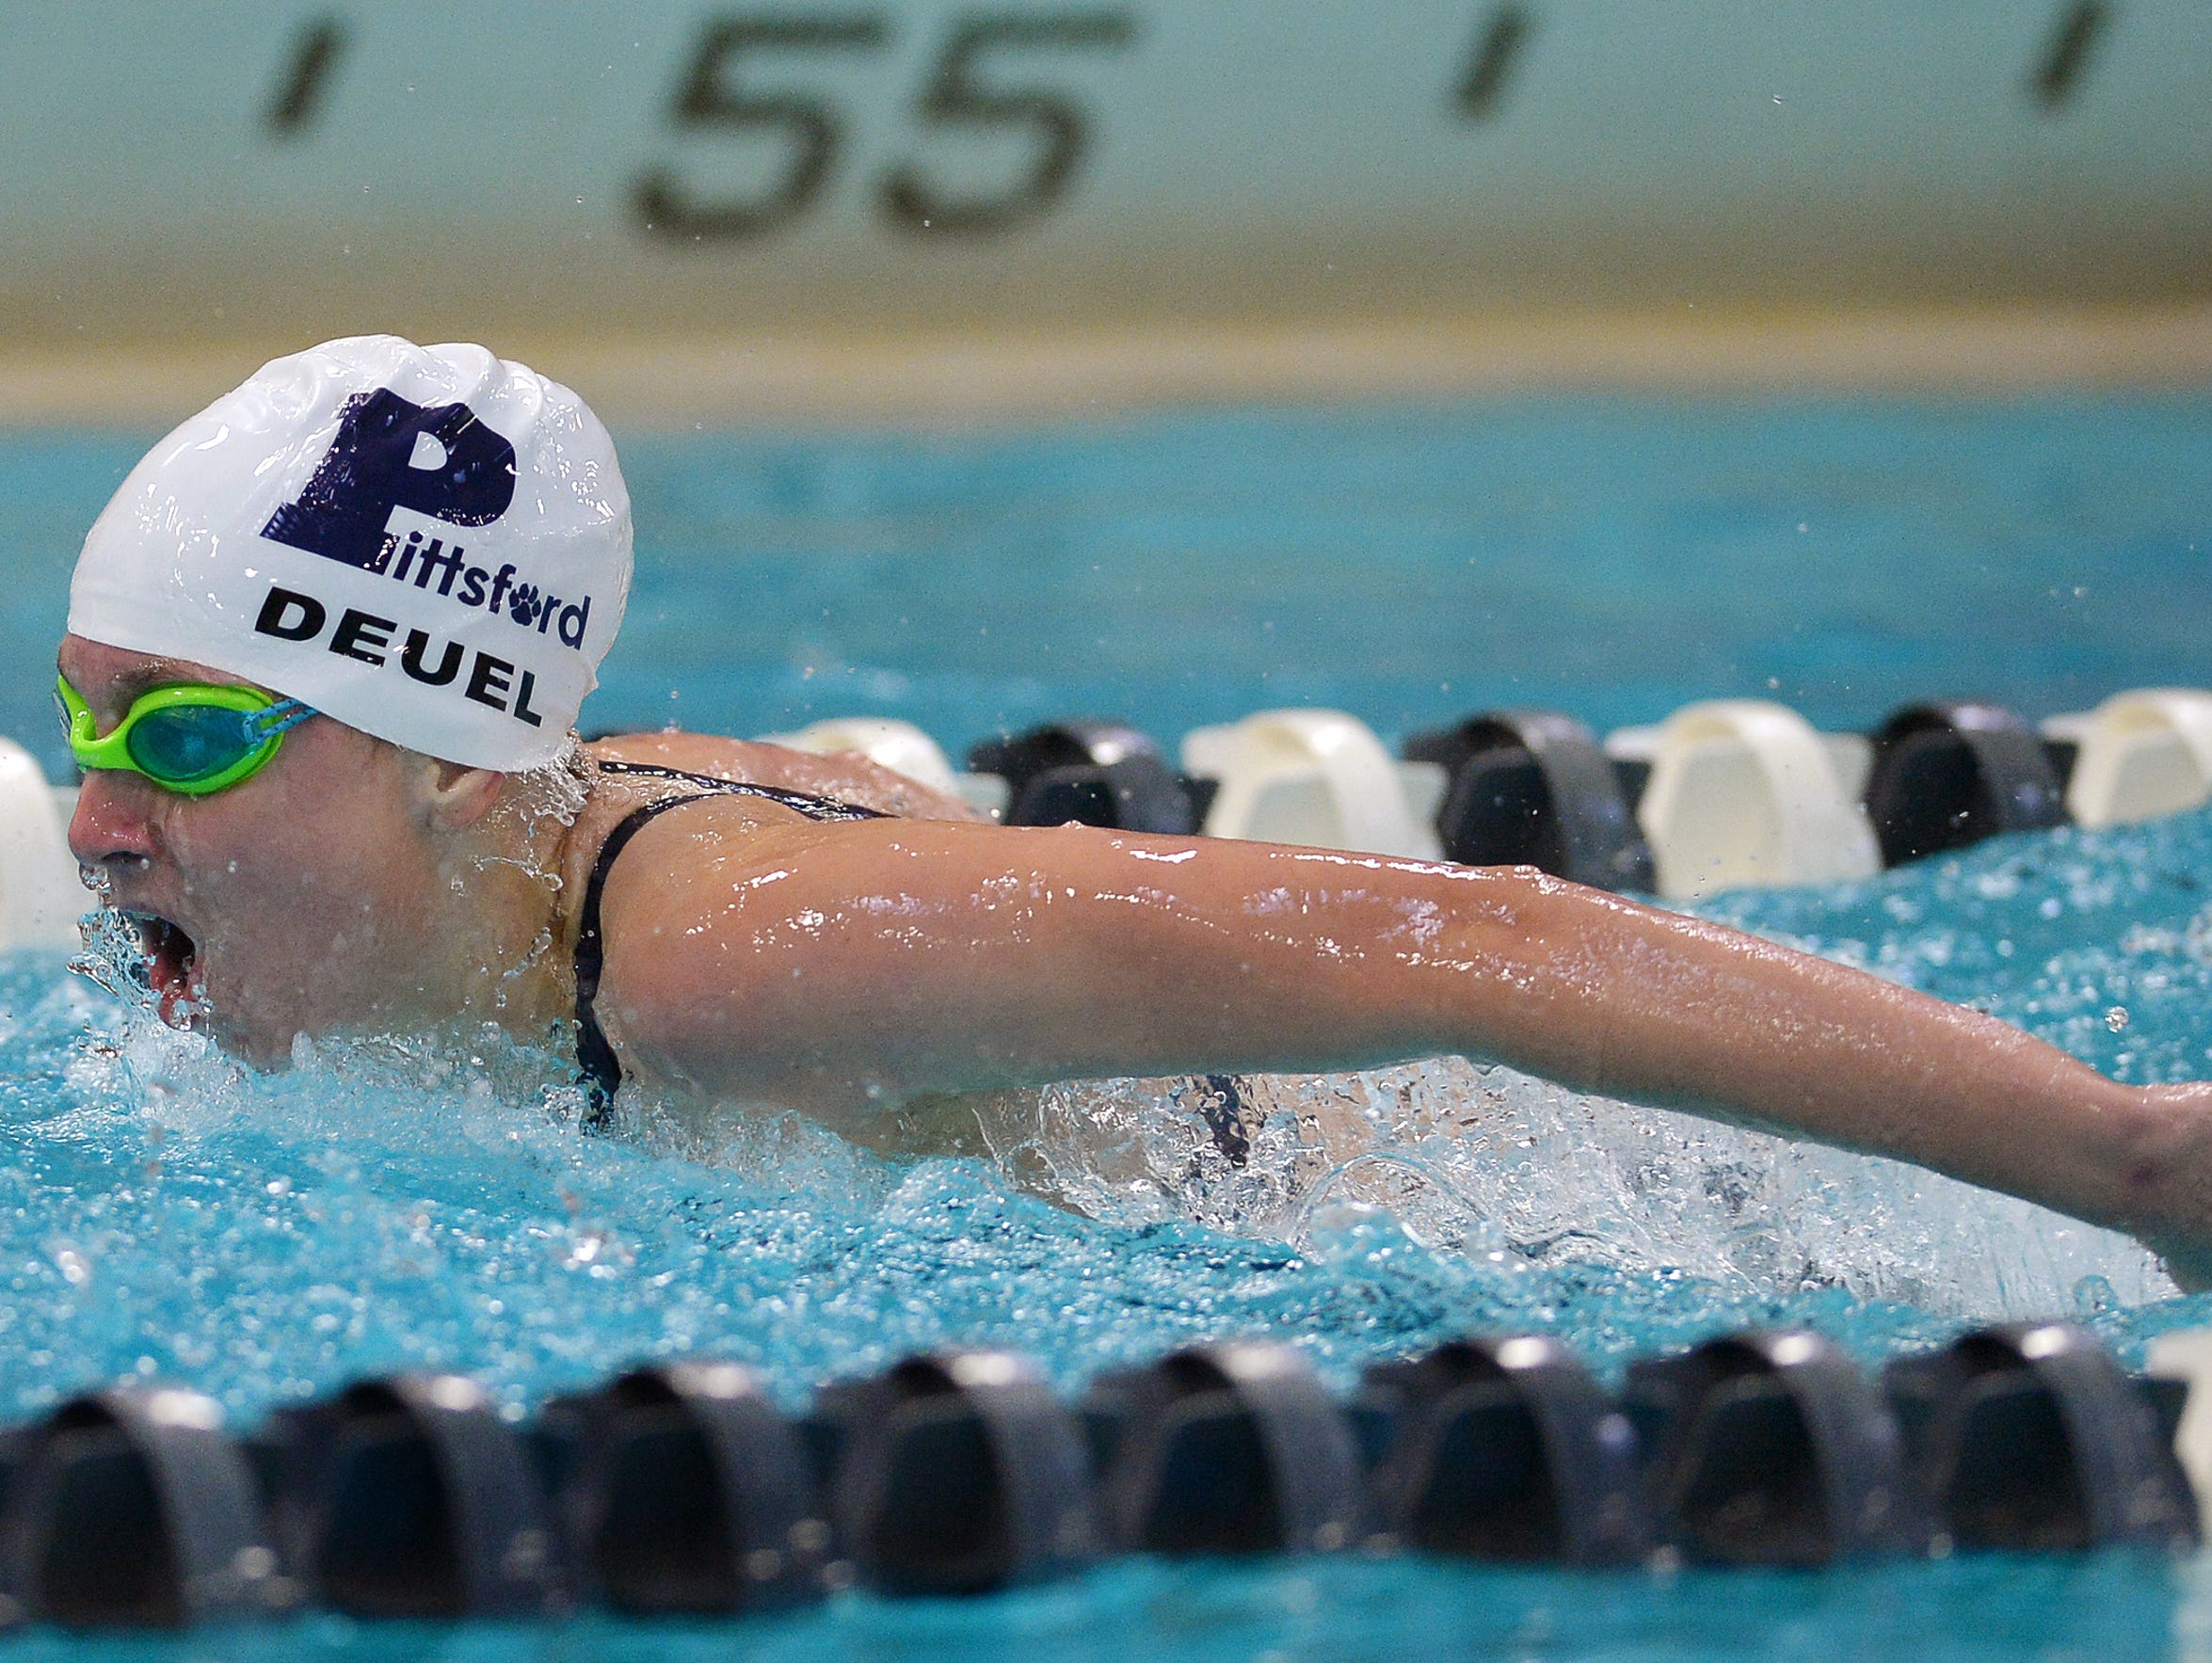 Pittsford's Megan Deuel swims the 100 yard butterfly